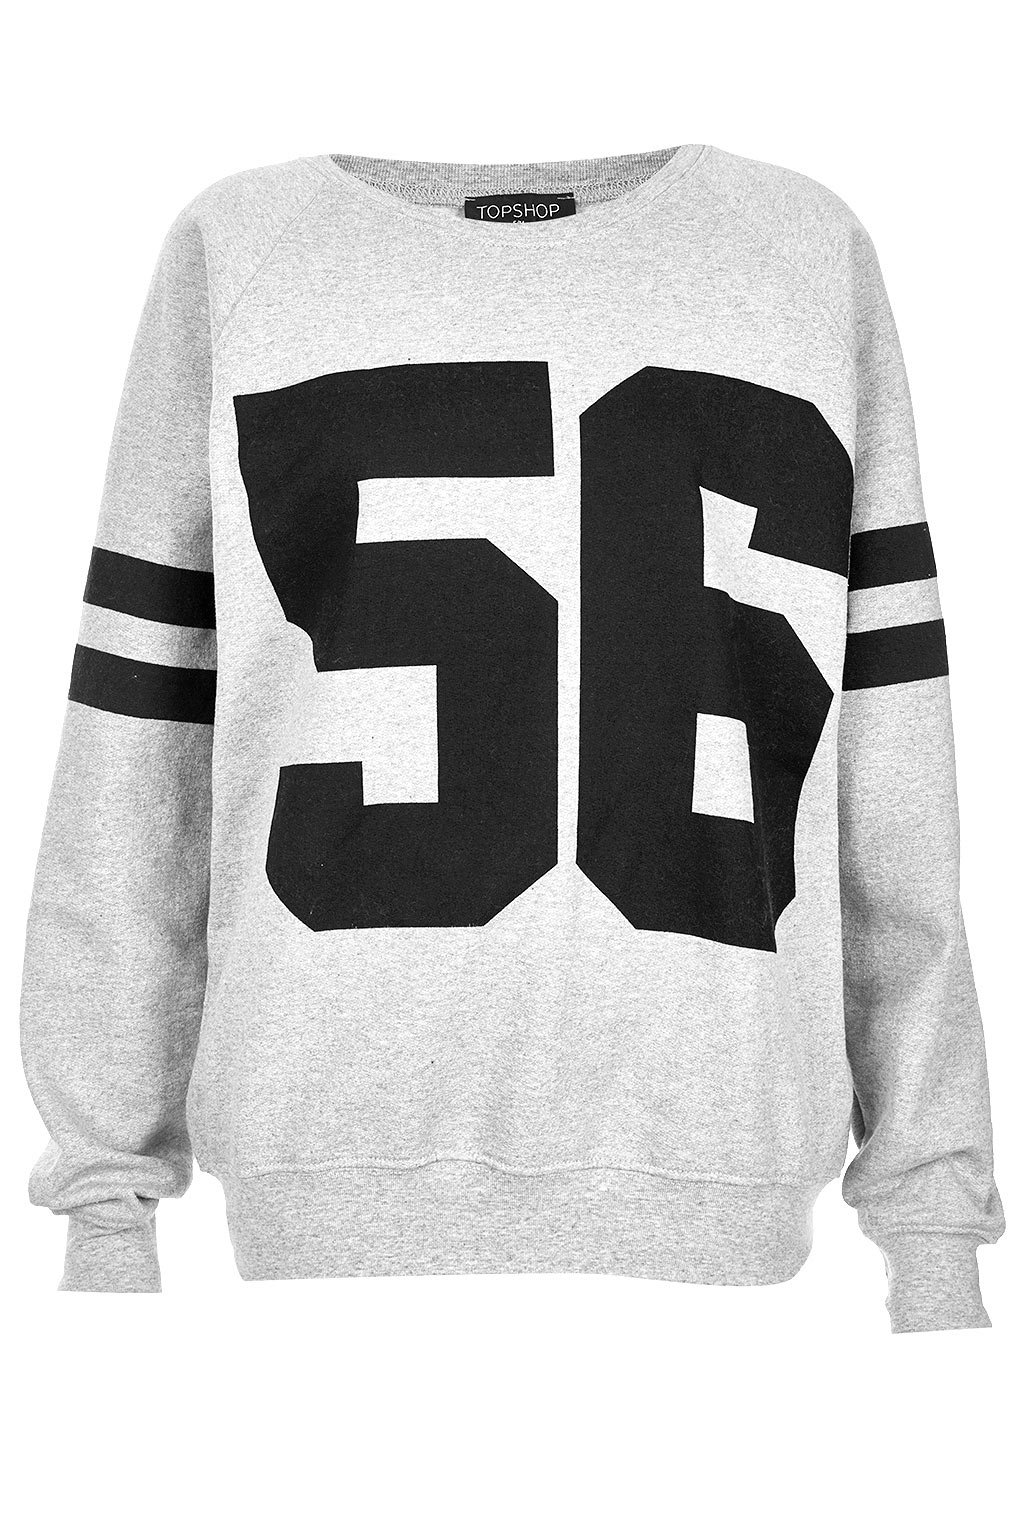 Number 56 sweater